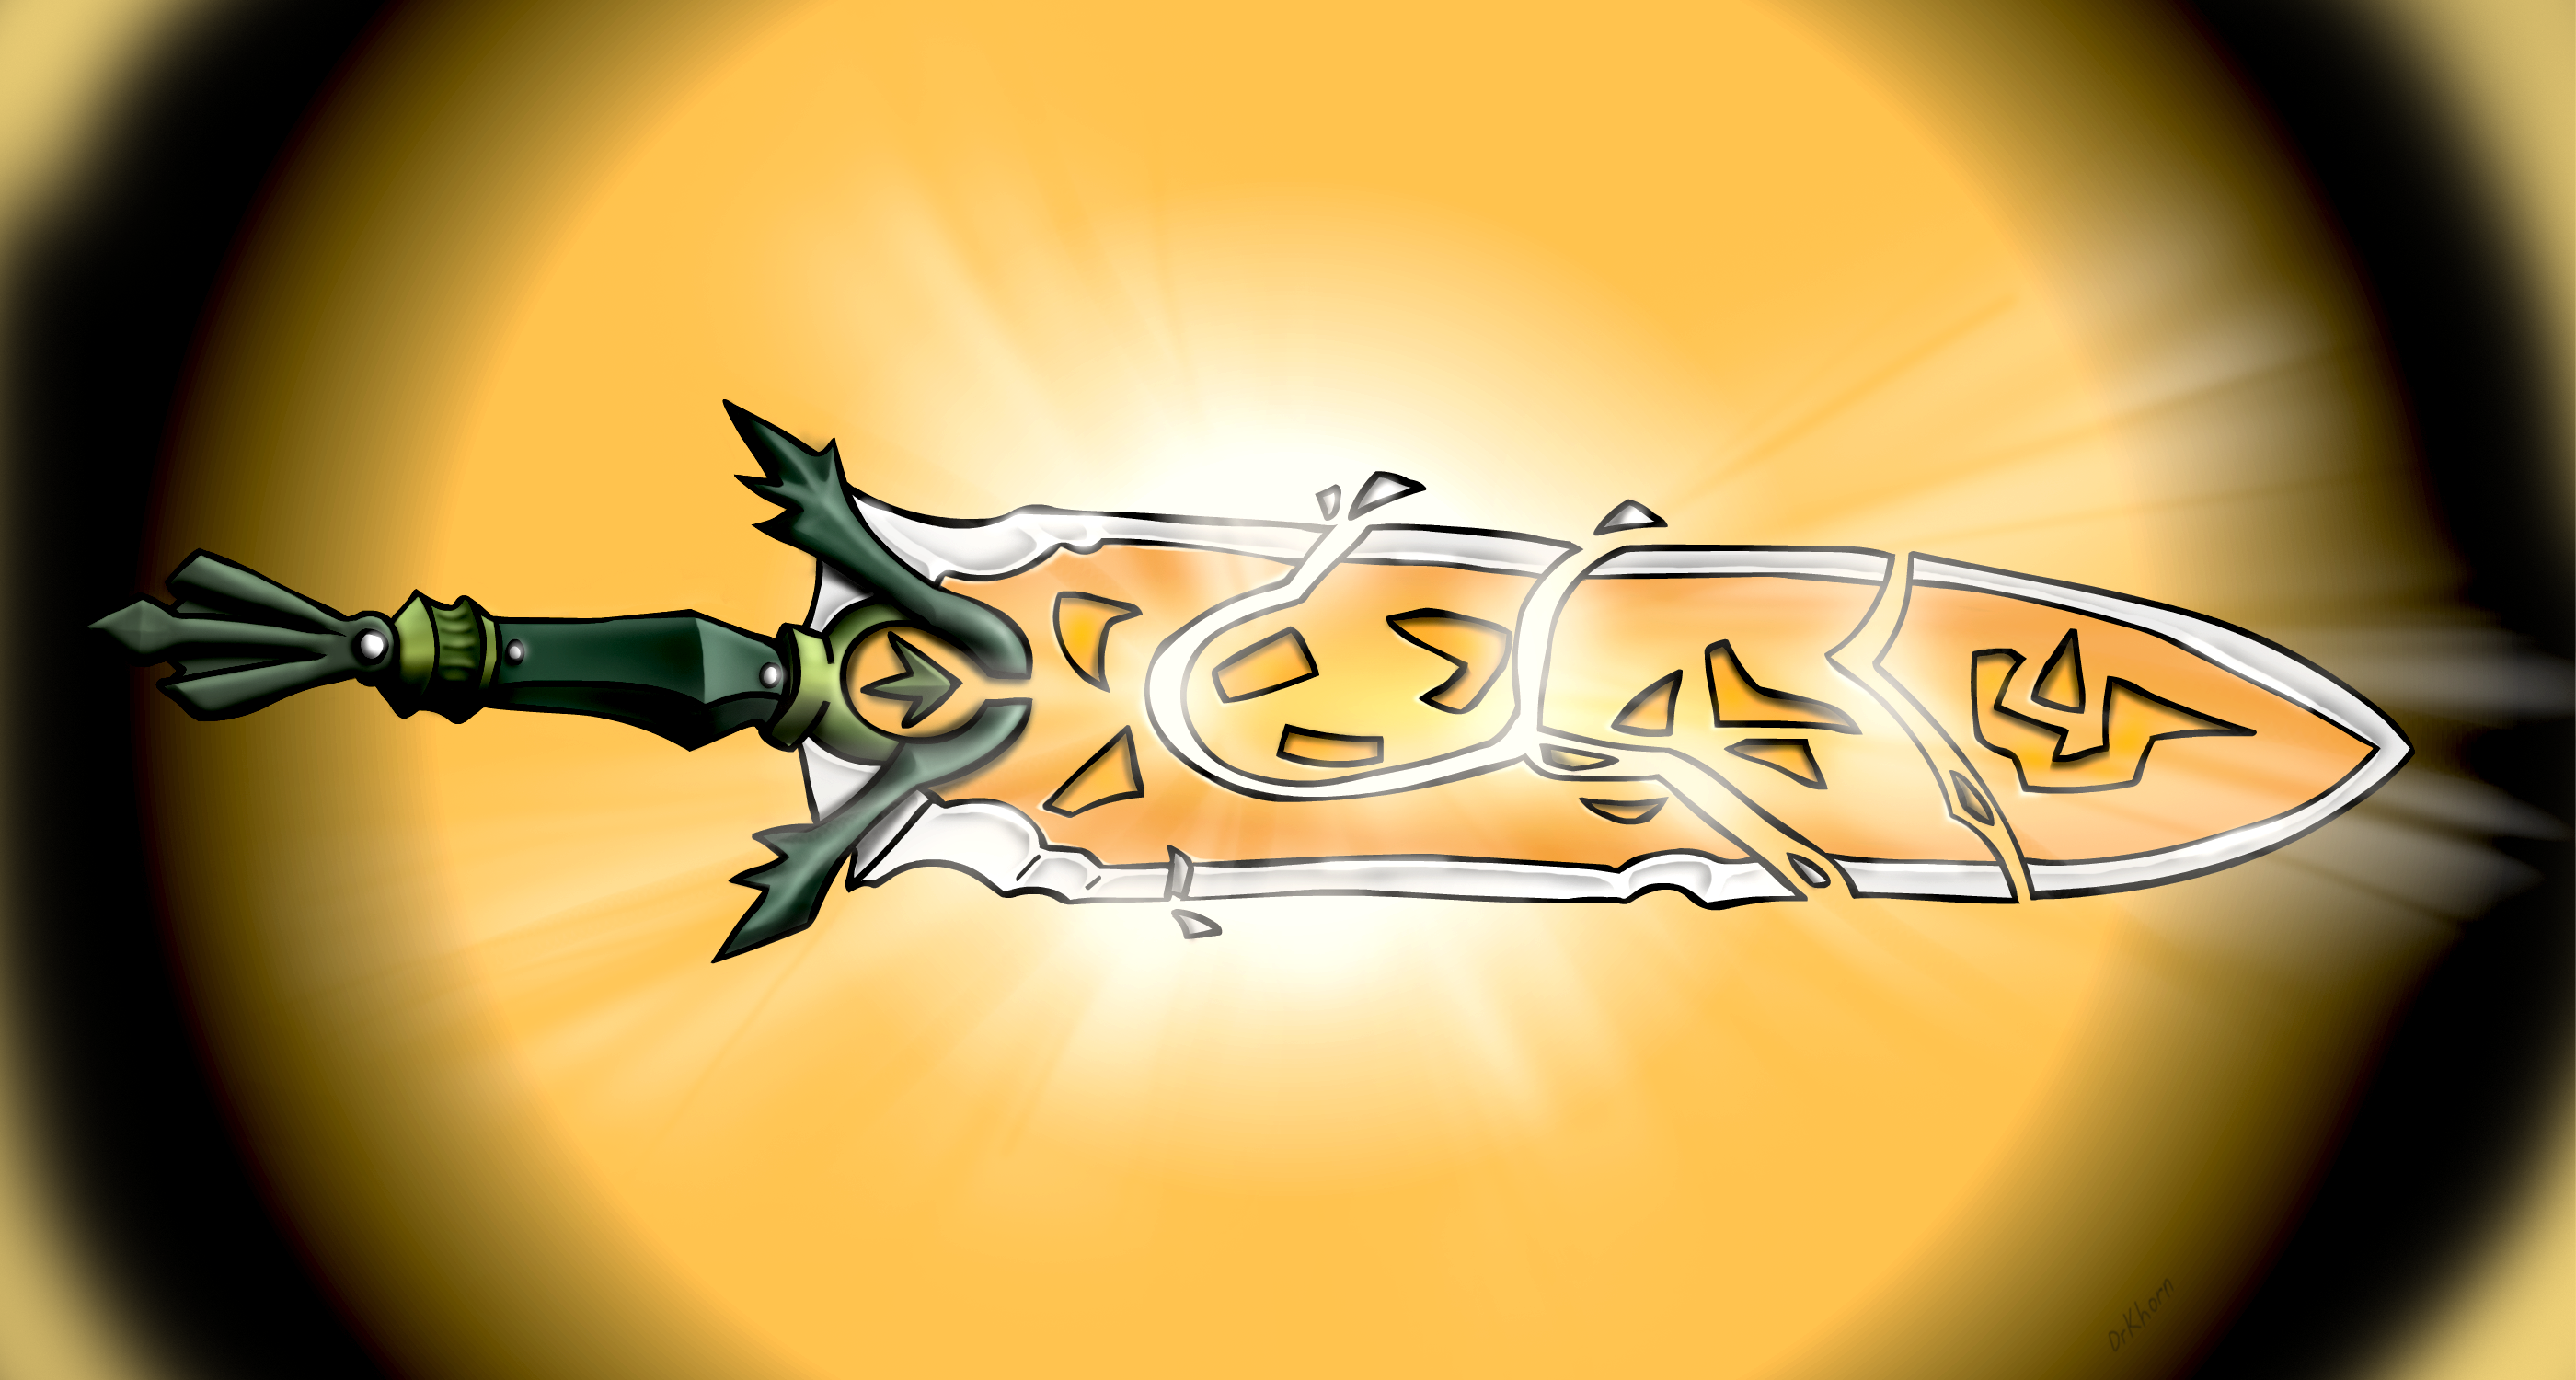 Carrot blade (Riven) 2nd v by DrKhorn on DeviantArtBunny Riven Fan Art